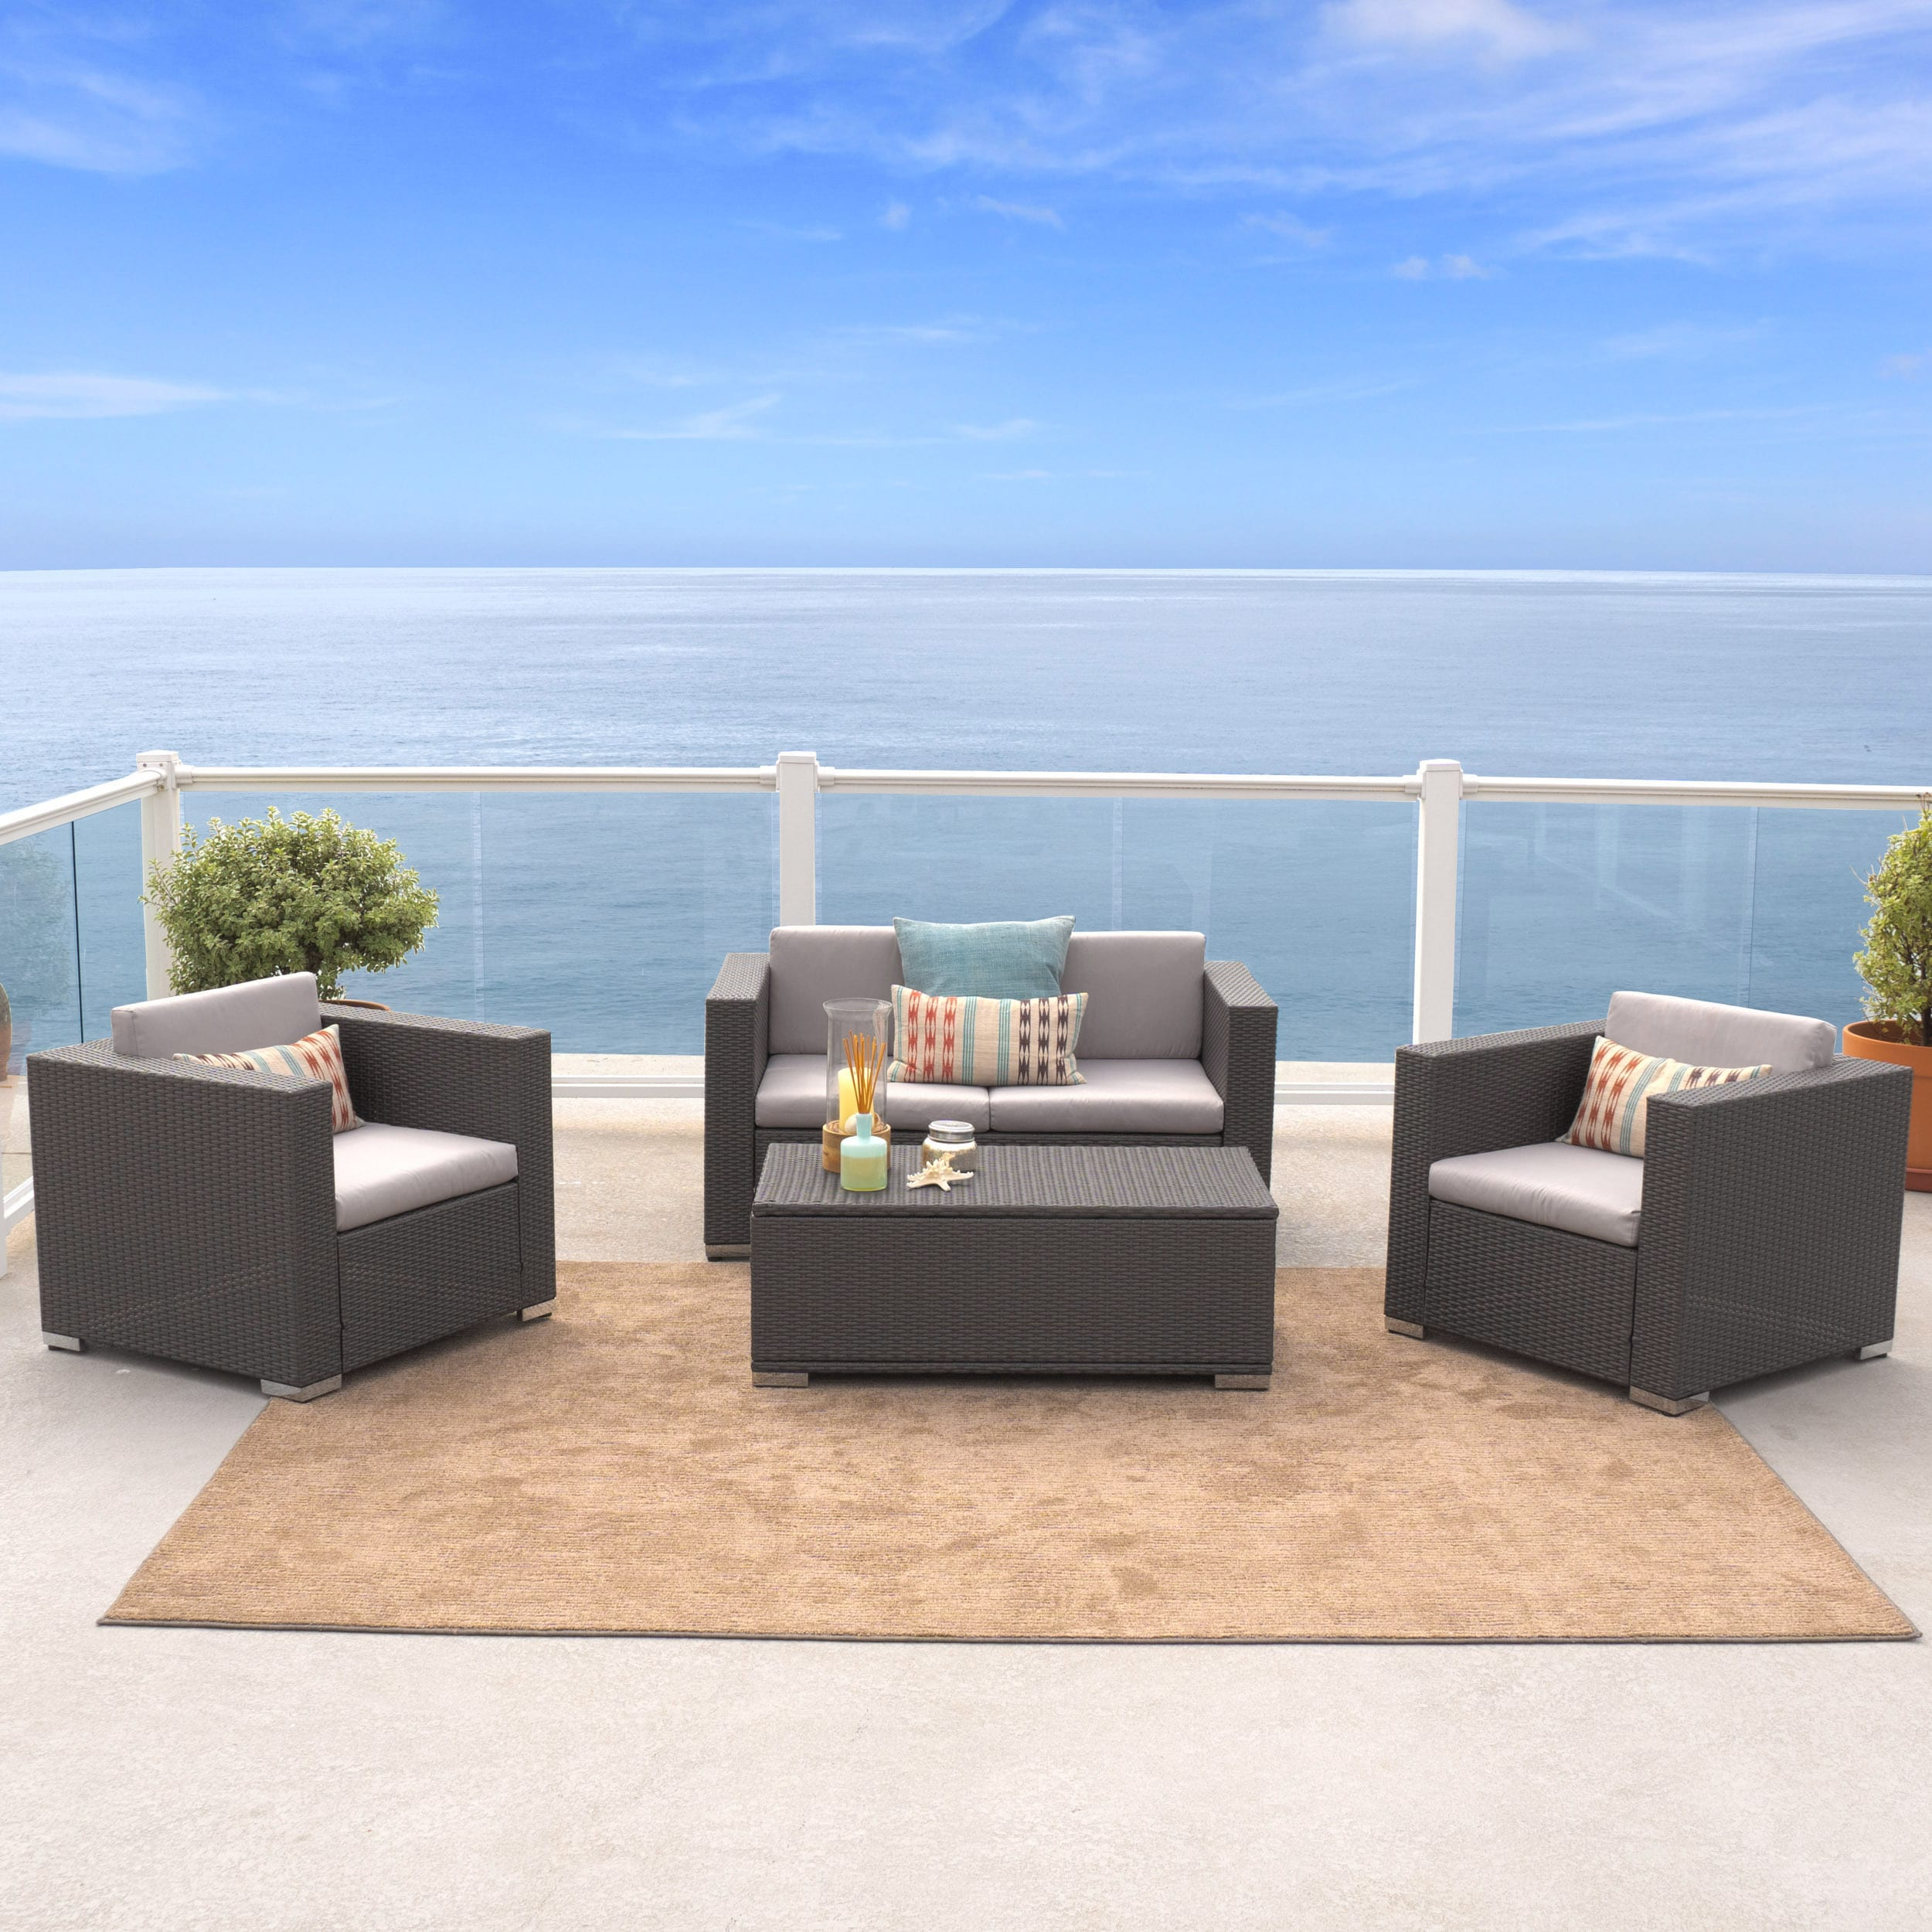 Murano 4 Piece Outdoor Wicker Sofa Set By Christopher Knight Home On Free Shipping Today 9643571